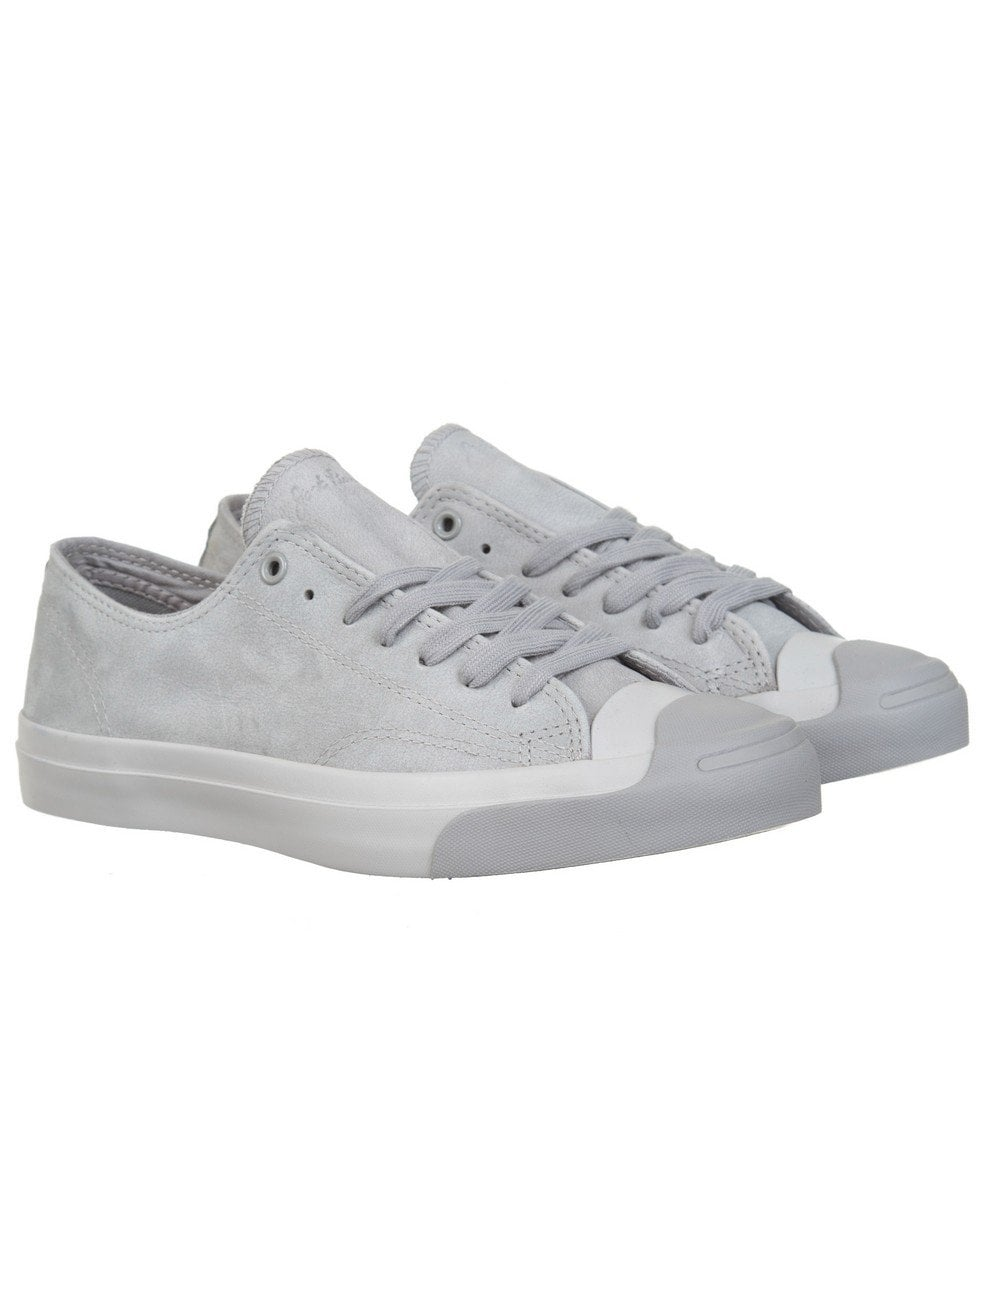 66c748823458 Converse Jack Purcell Jack Ox Shoes - Dolphin Dolphin - Footwear ...